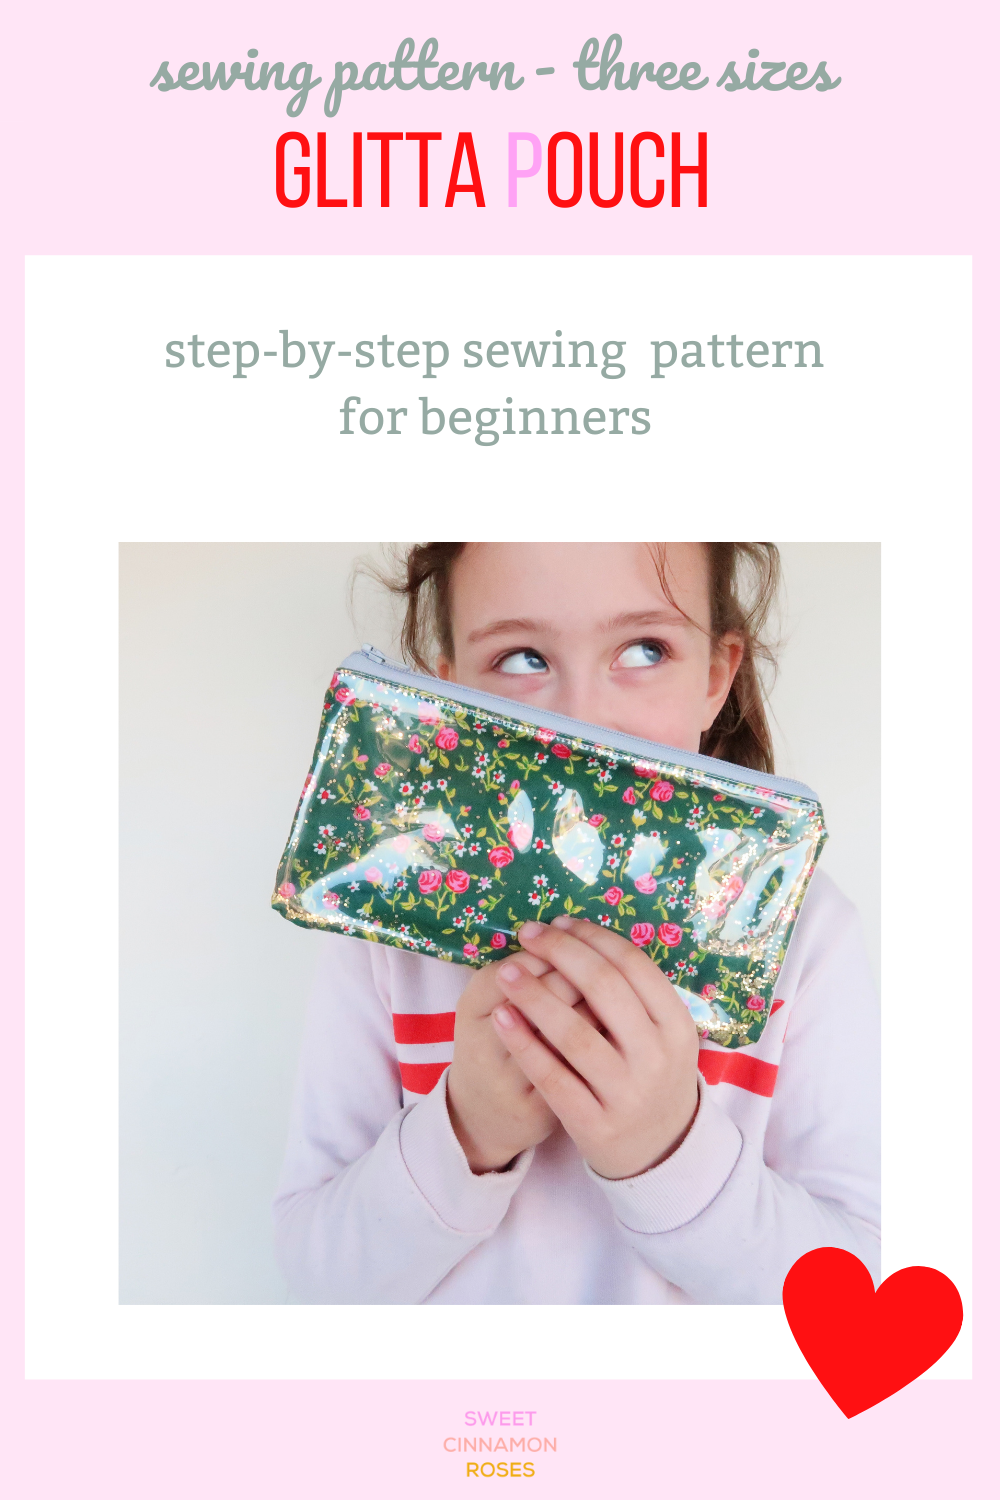 Sweet Cinnamon Roses - Glitta Pouch, step-by-step sewing pattern